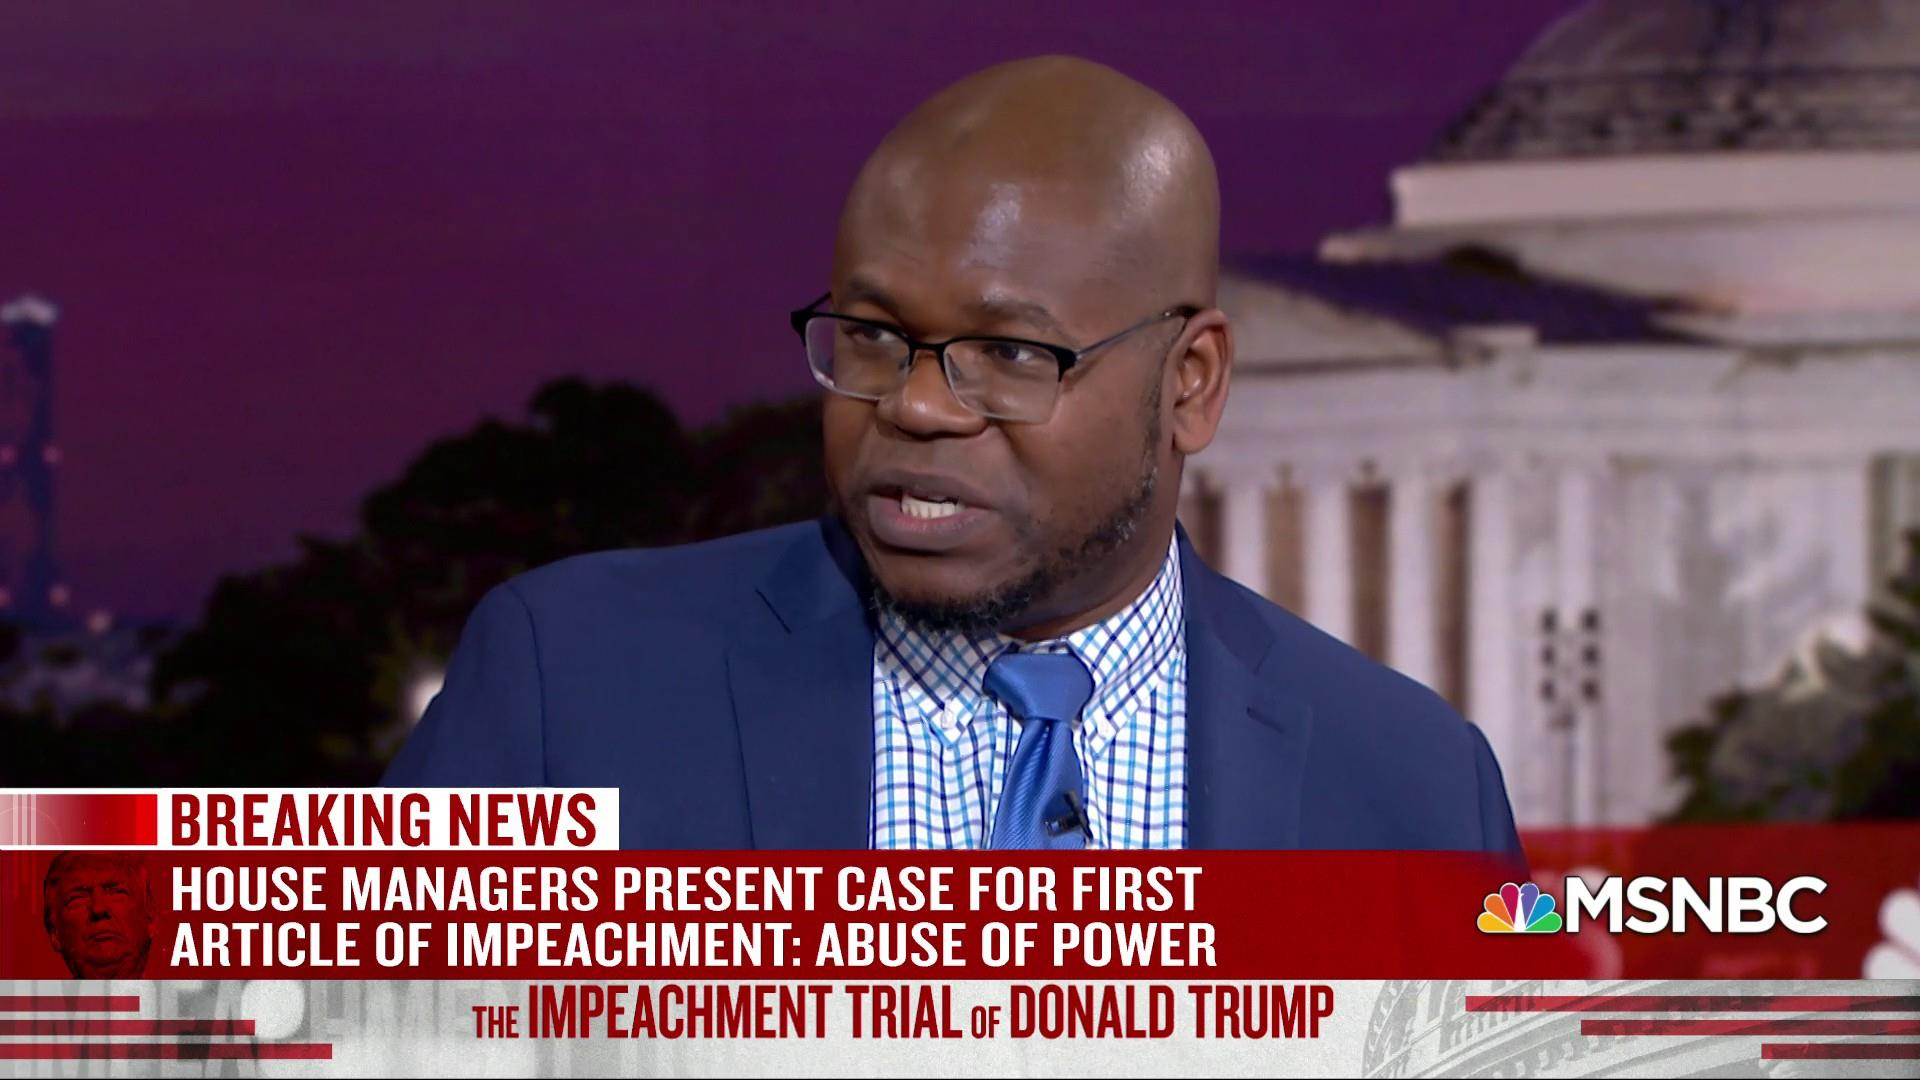 Johnson: Day One of impeachment trial was like 'Wheel of Fortune,' Day Two is like 'Wild 'N Out'